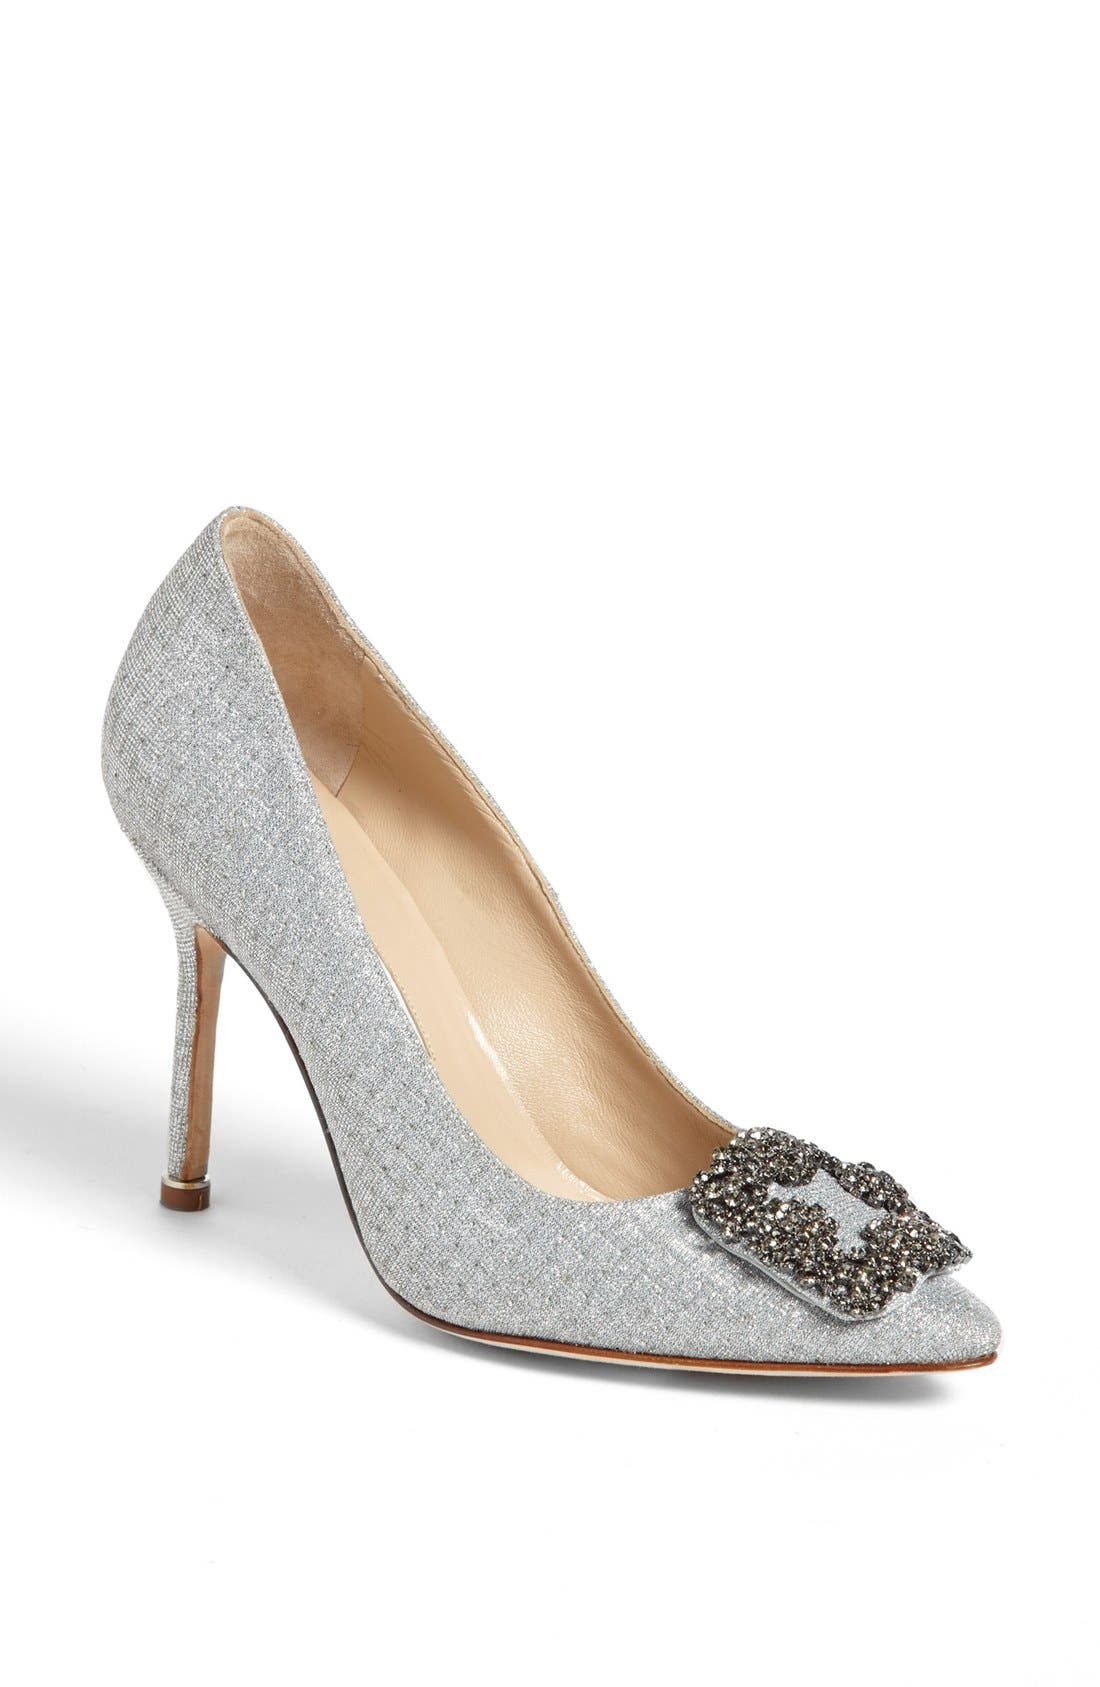 'Hangisi' Jeweled Pump,                             Main thumbnail 1, color,                             SILVER